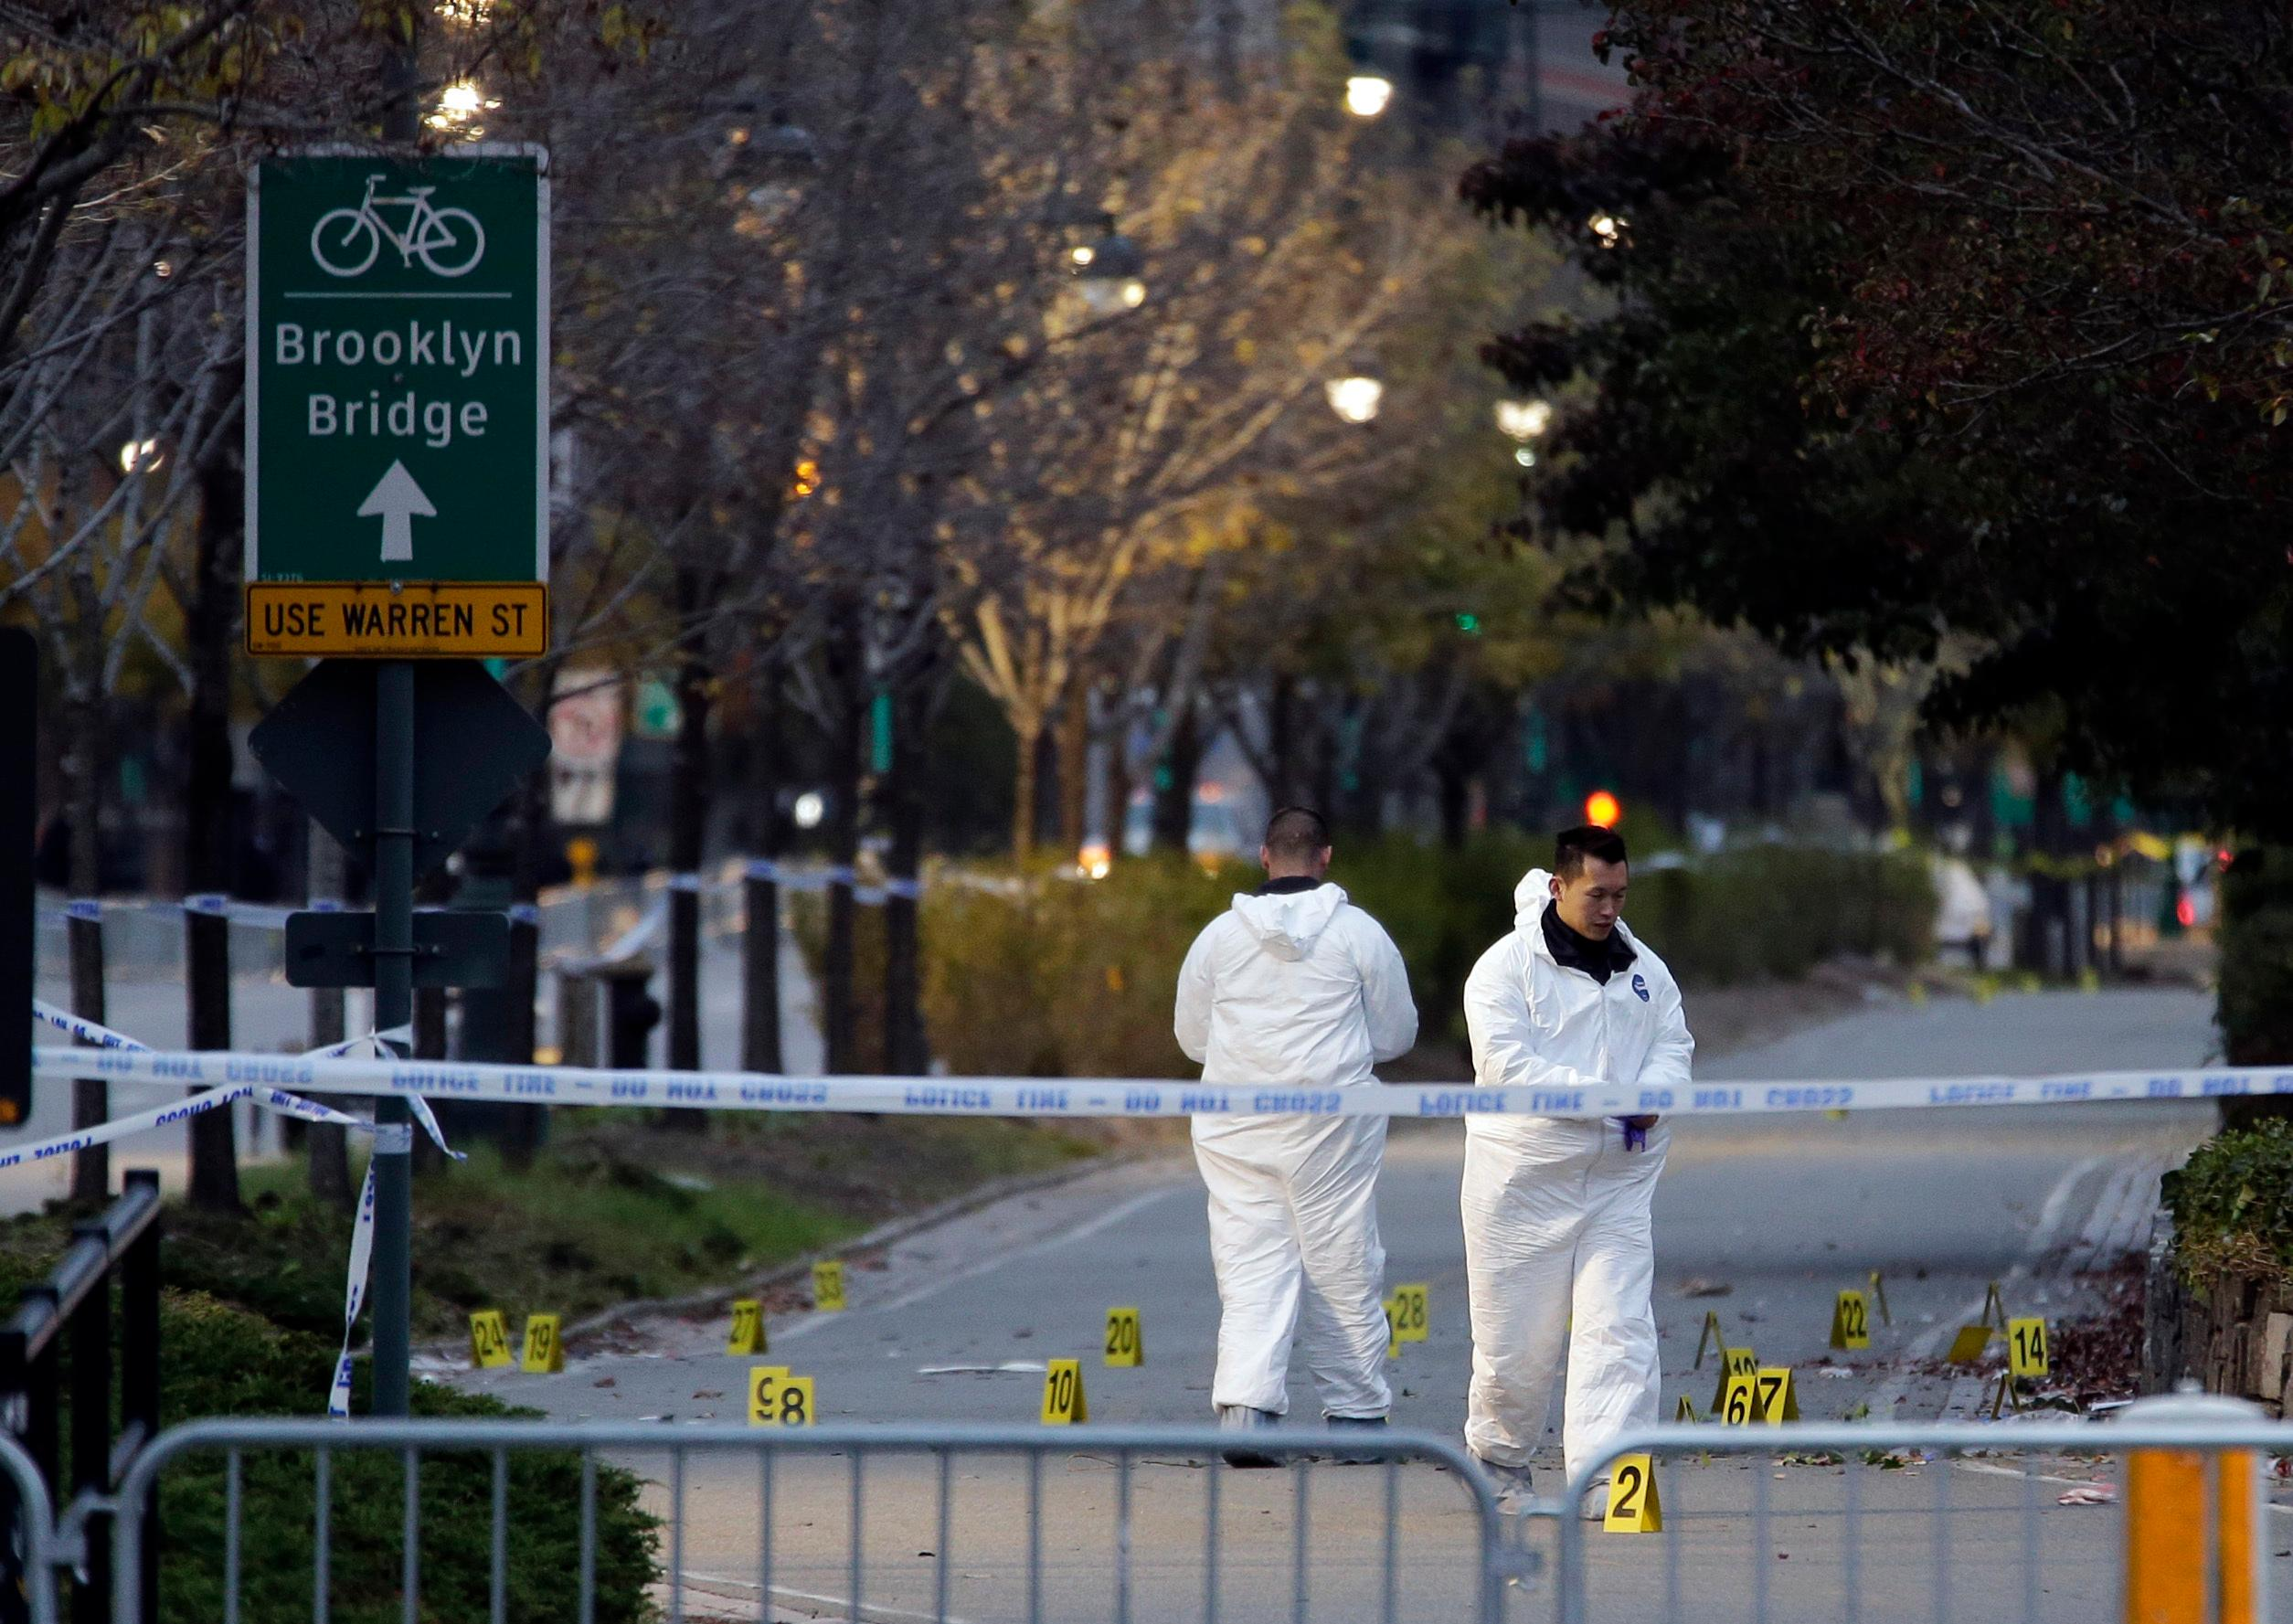 Emergency officials walk near evidence markers on the west side bike path in lower Manhattan, New York, Wednesday, Nov. 1, 2017. Investigators worked through the night to determine what led a truck driver to plow down people Tuesday on the riverfront bike path near the World Trade Center, authorities said. (AP Photo/Seth Wenig)